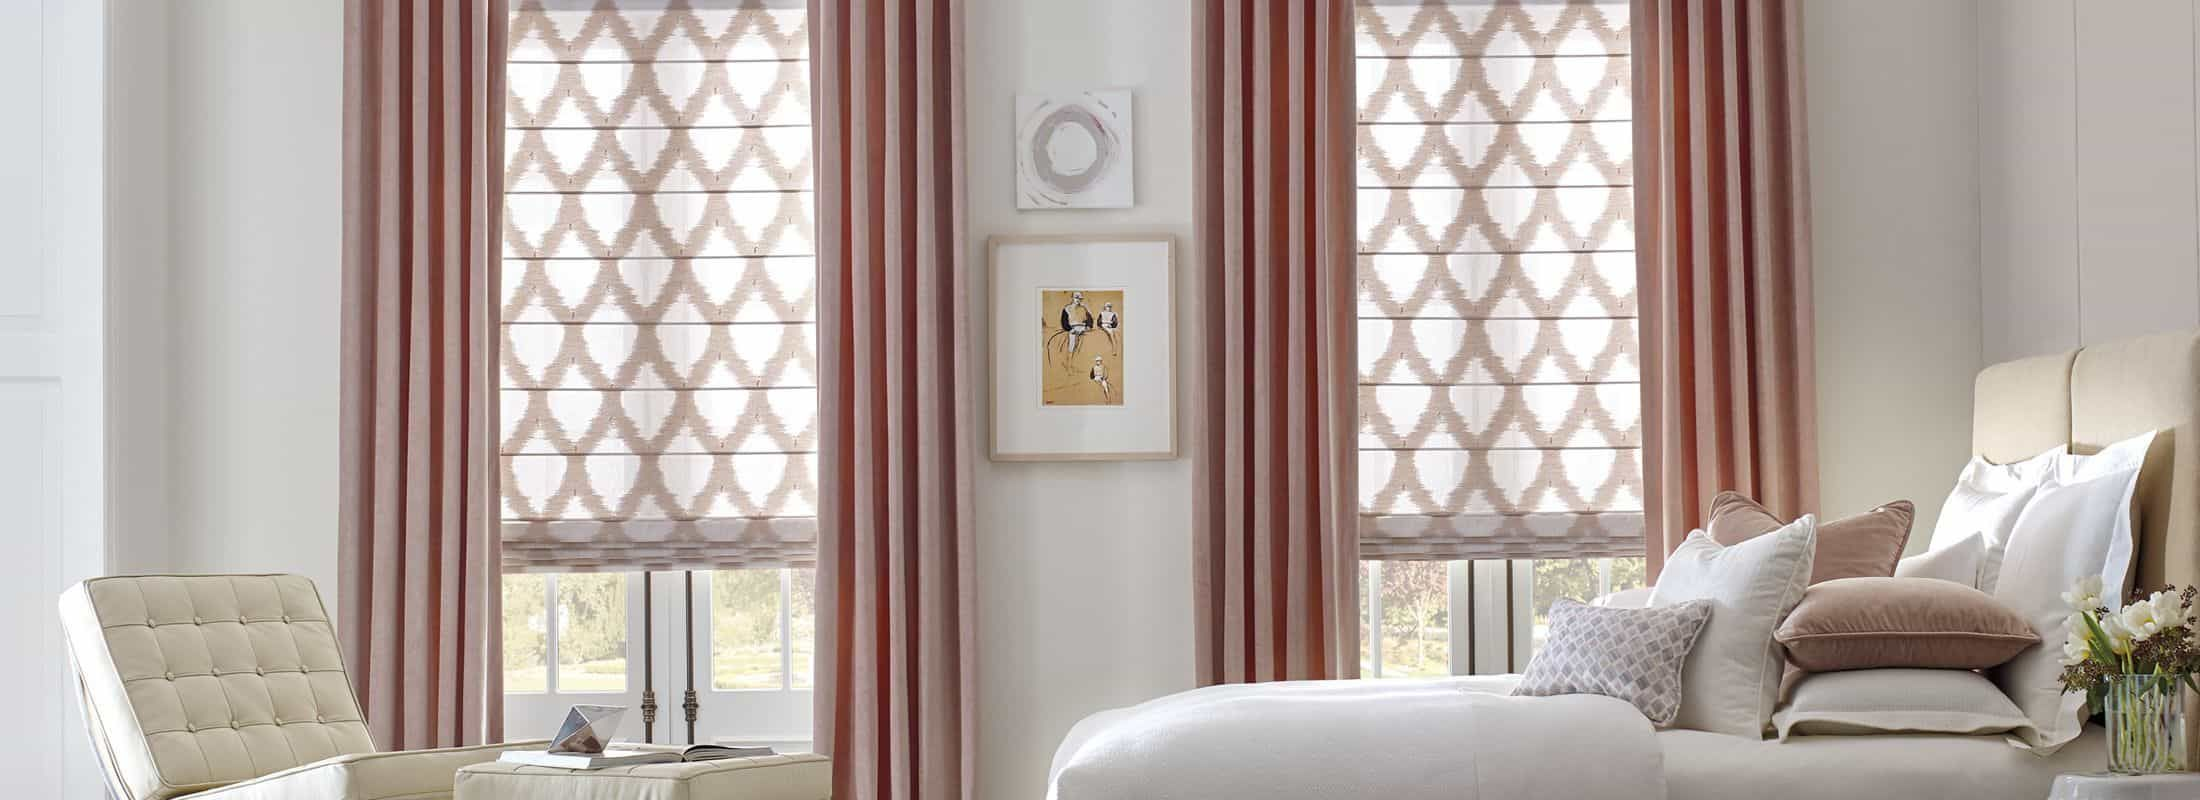 Top 10 Modern Curtains 2021 Best Colors Prints And Fabrics Modern Curtains Contemporary Curtains Luxury Curtains